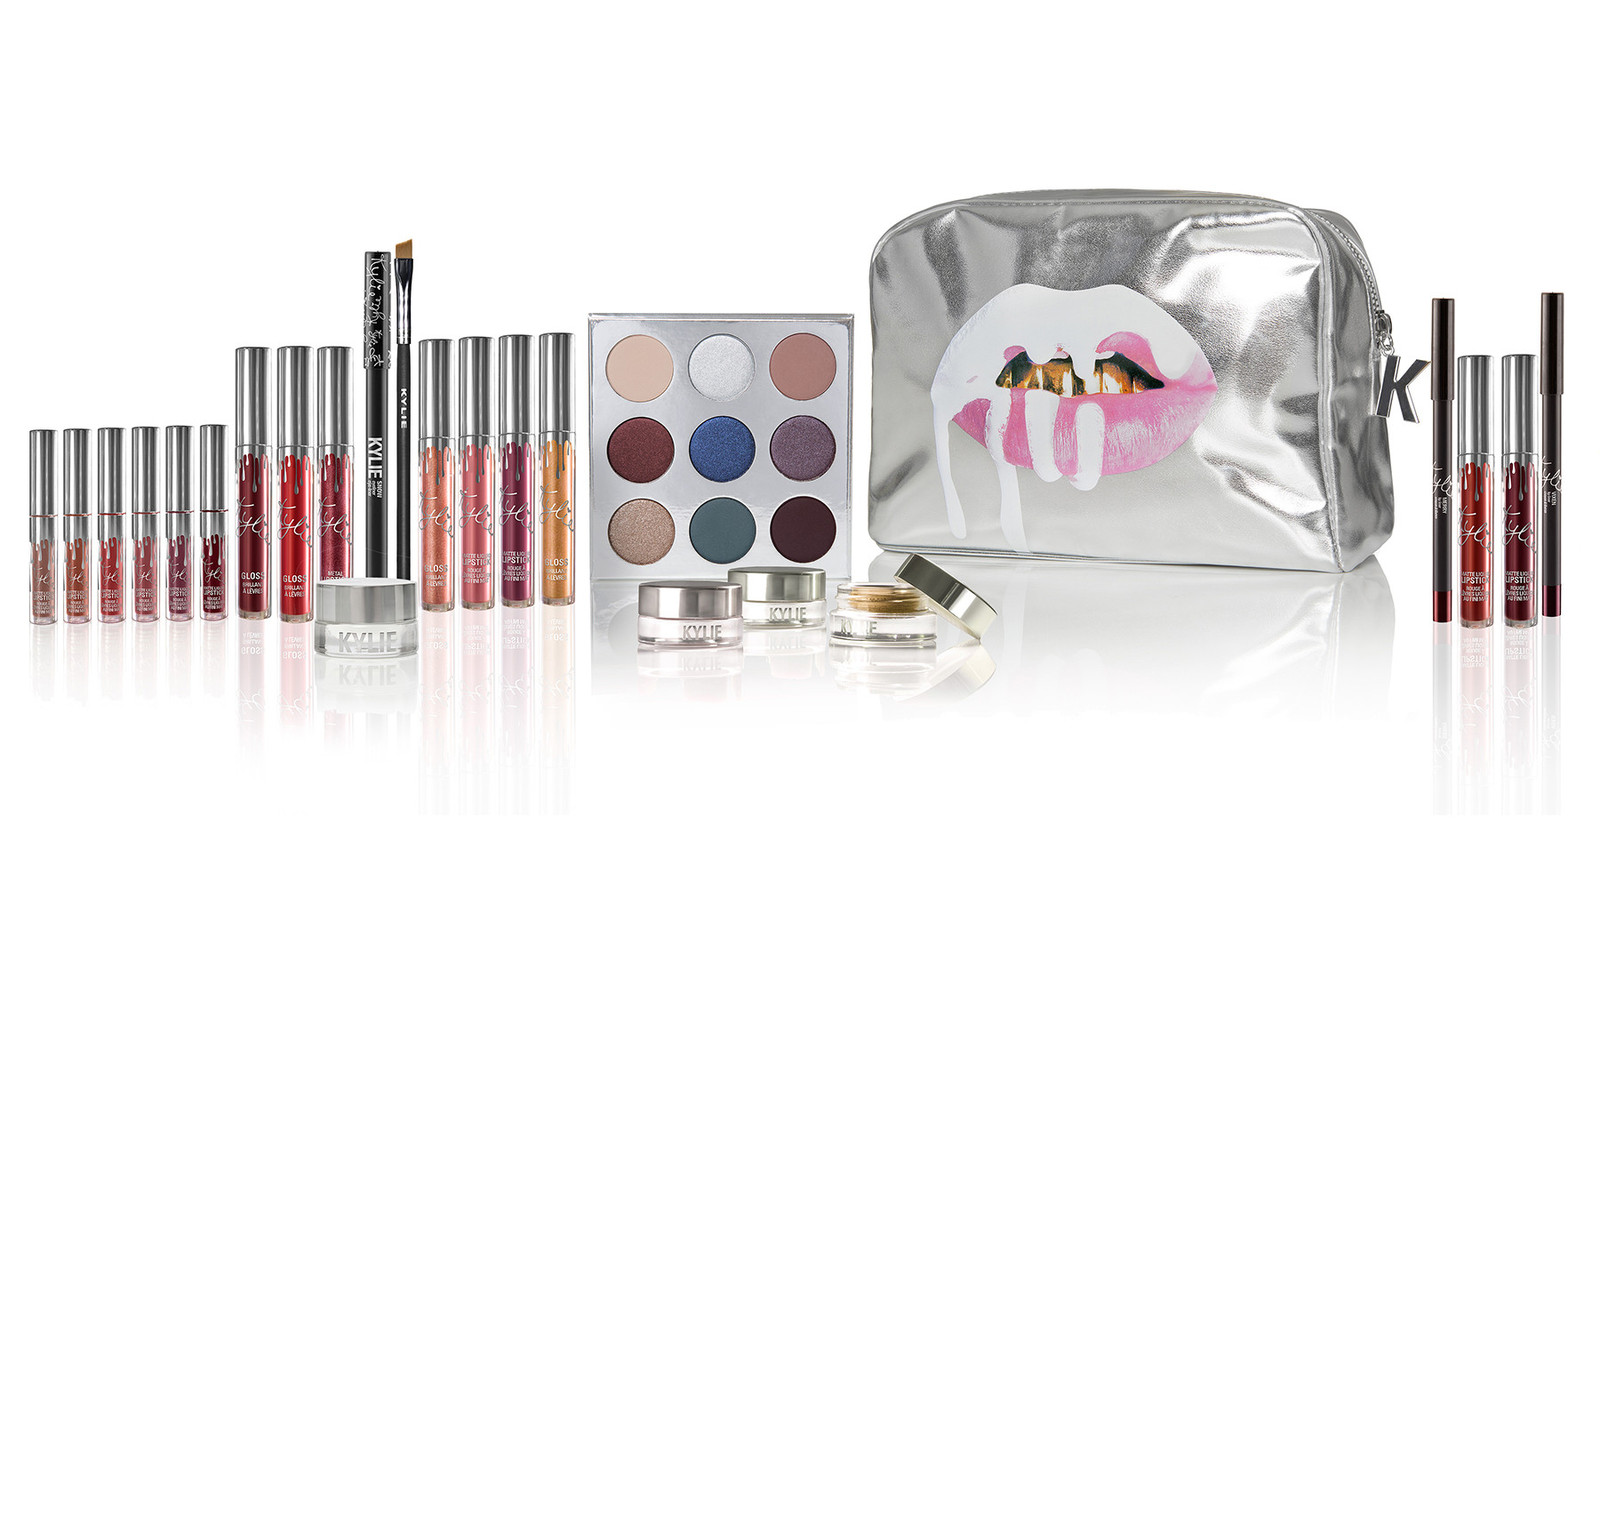 Kylie Cosmetics, Limited Edition, The Holiday Collection Bundle (EVERYTHING!) - $300.00